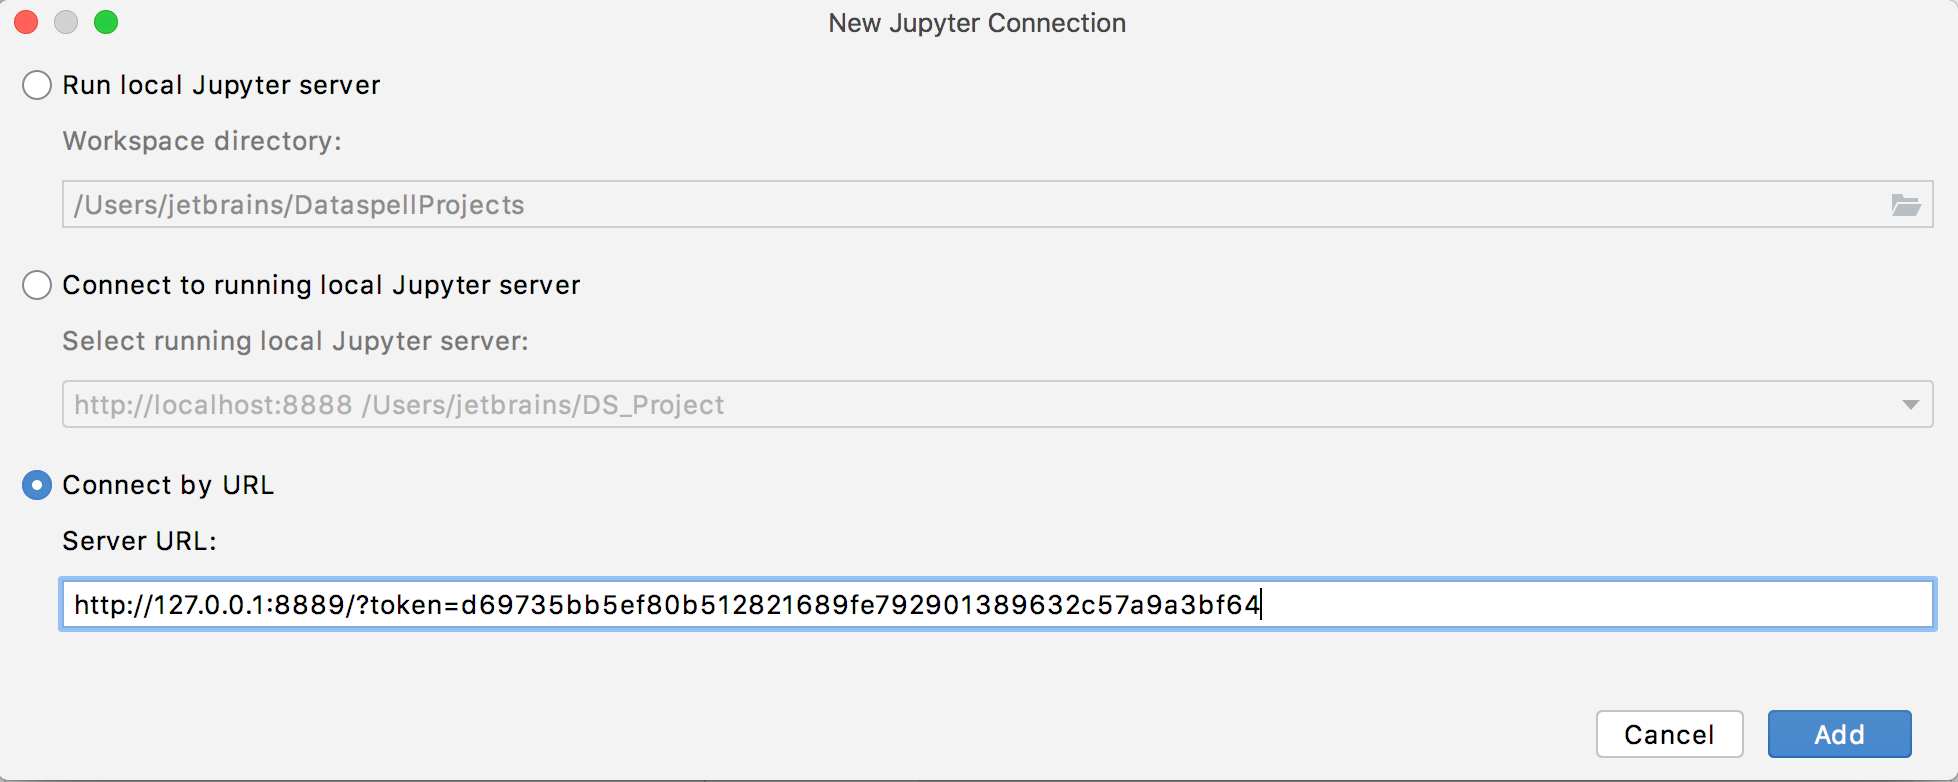 Add a remote connection to a Jupyter server